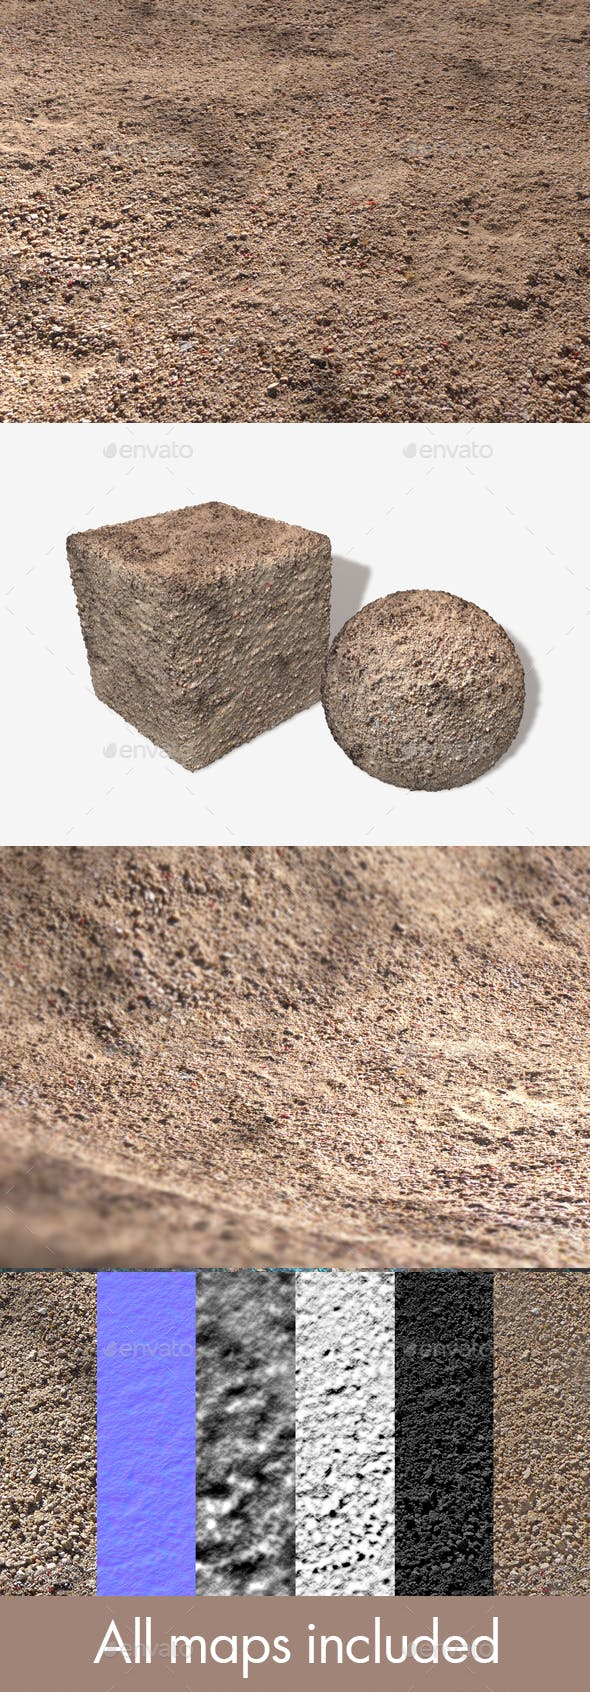 The Painted Desert Ground Seamless Texture - 3DOcean Item for Sale